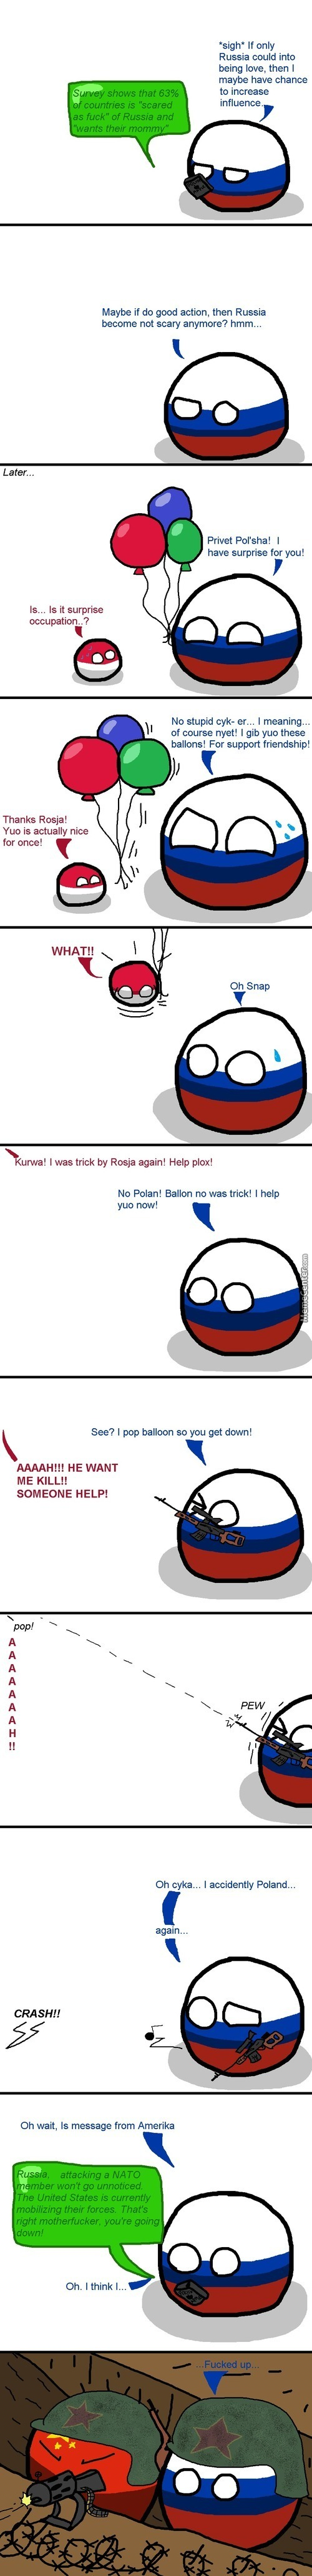 Russia Is Just Misunderstood